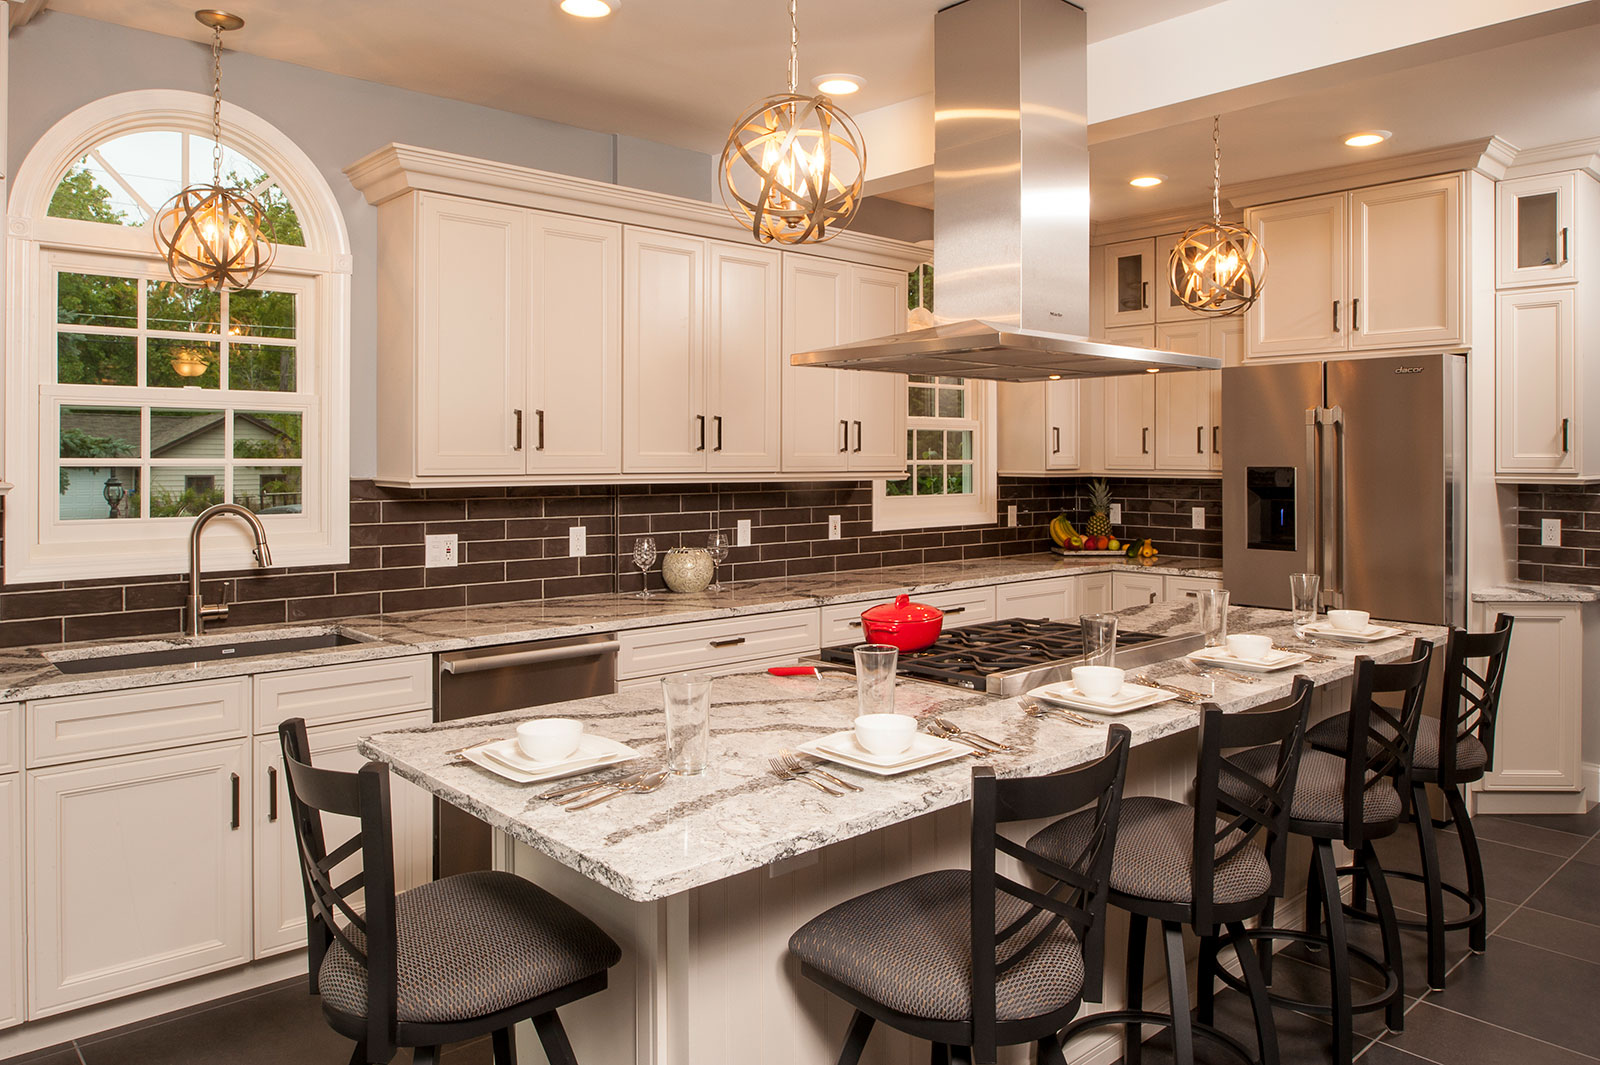 Genial Classic Meets Current Kitchen Remodel And Design